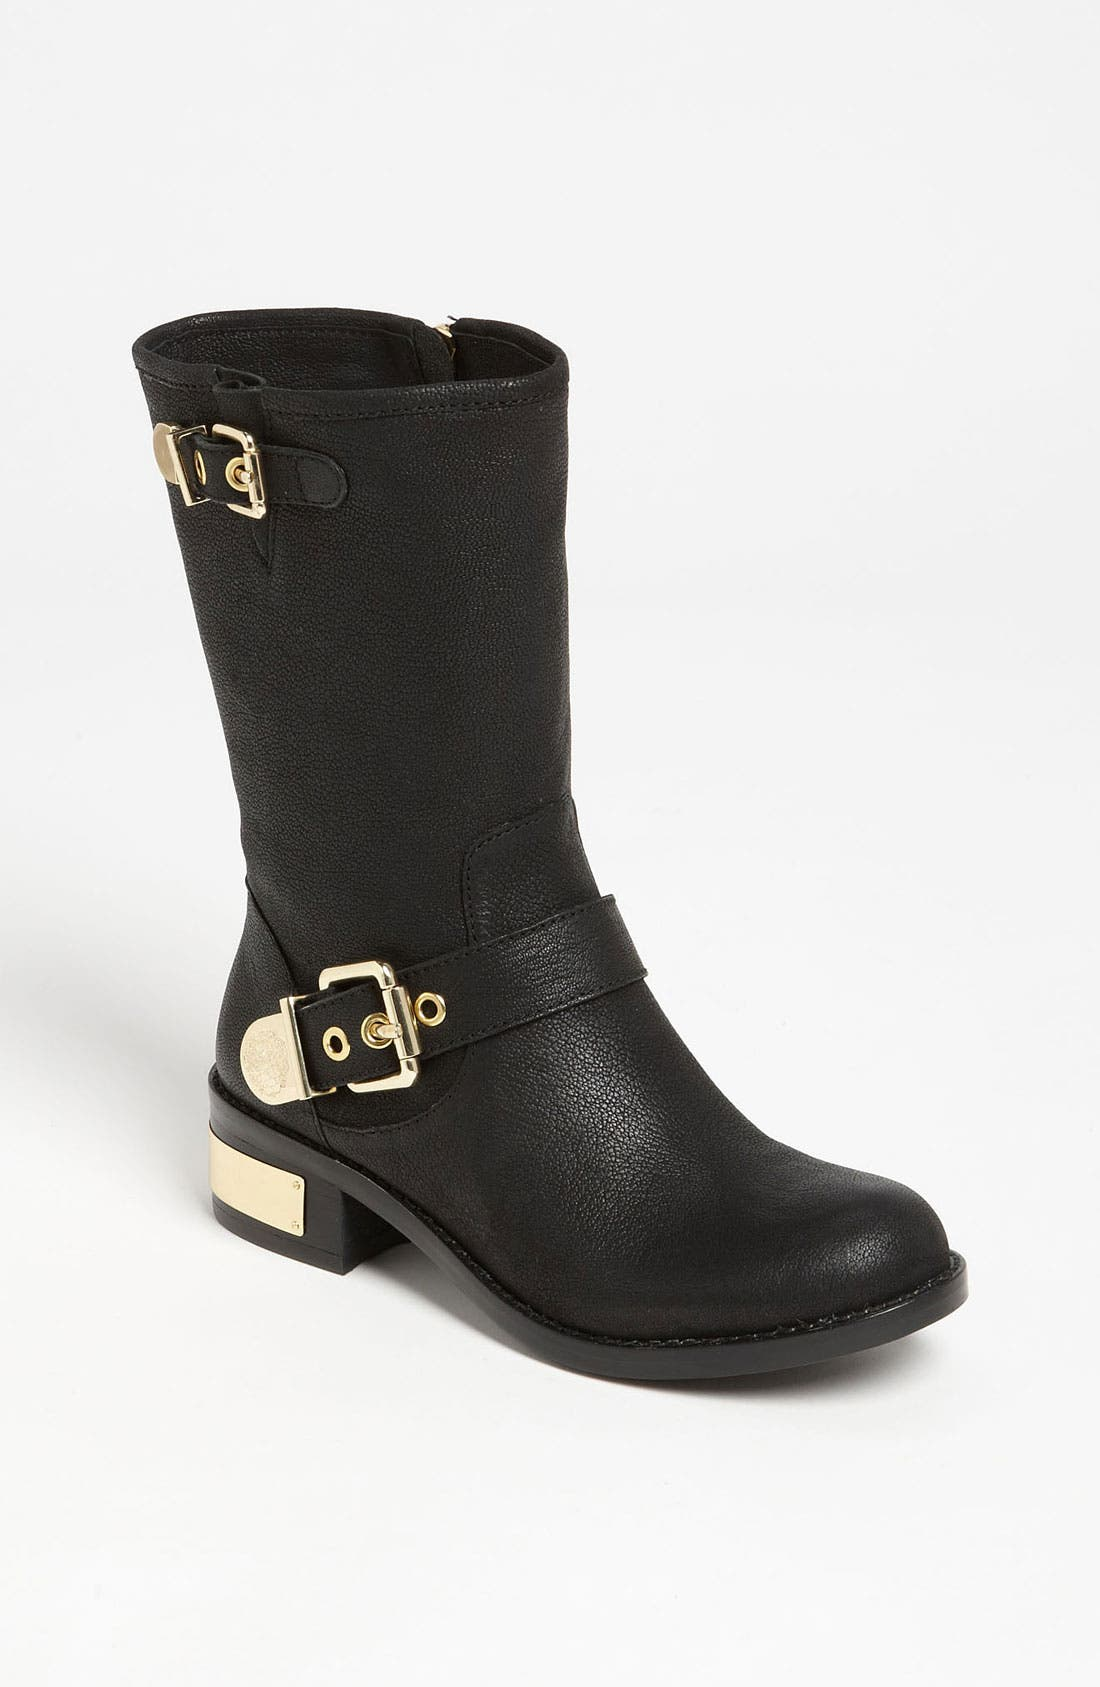 Main Image - Vince Camuto 'Winchell' boot